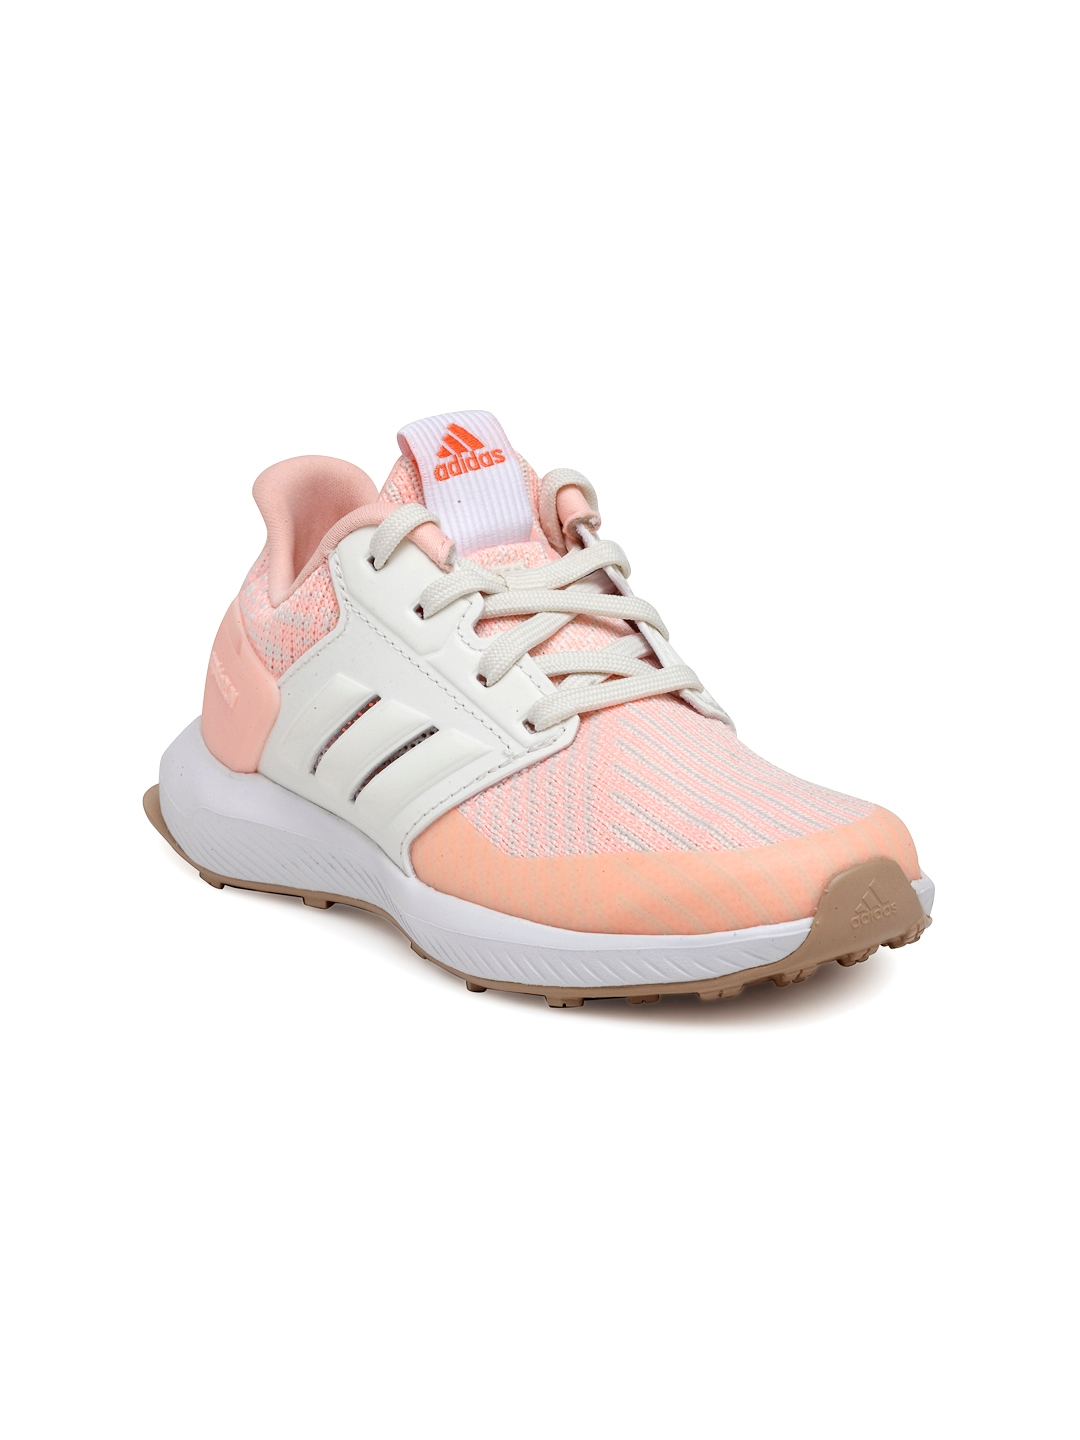 46970ea94a62 Buy ADIDAS Kids Peach Rapidarun Knit C Running Shoes - Sports Shoes ...